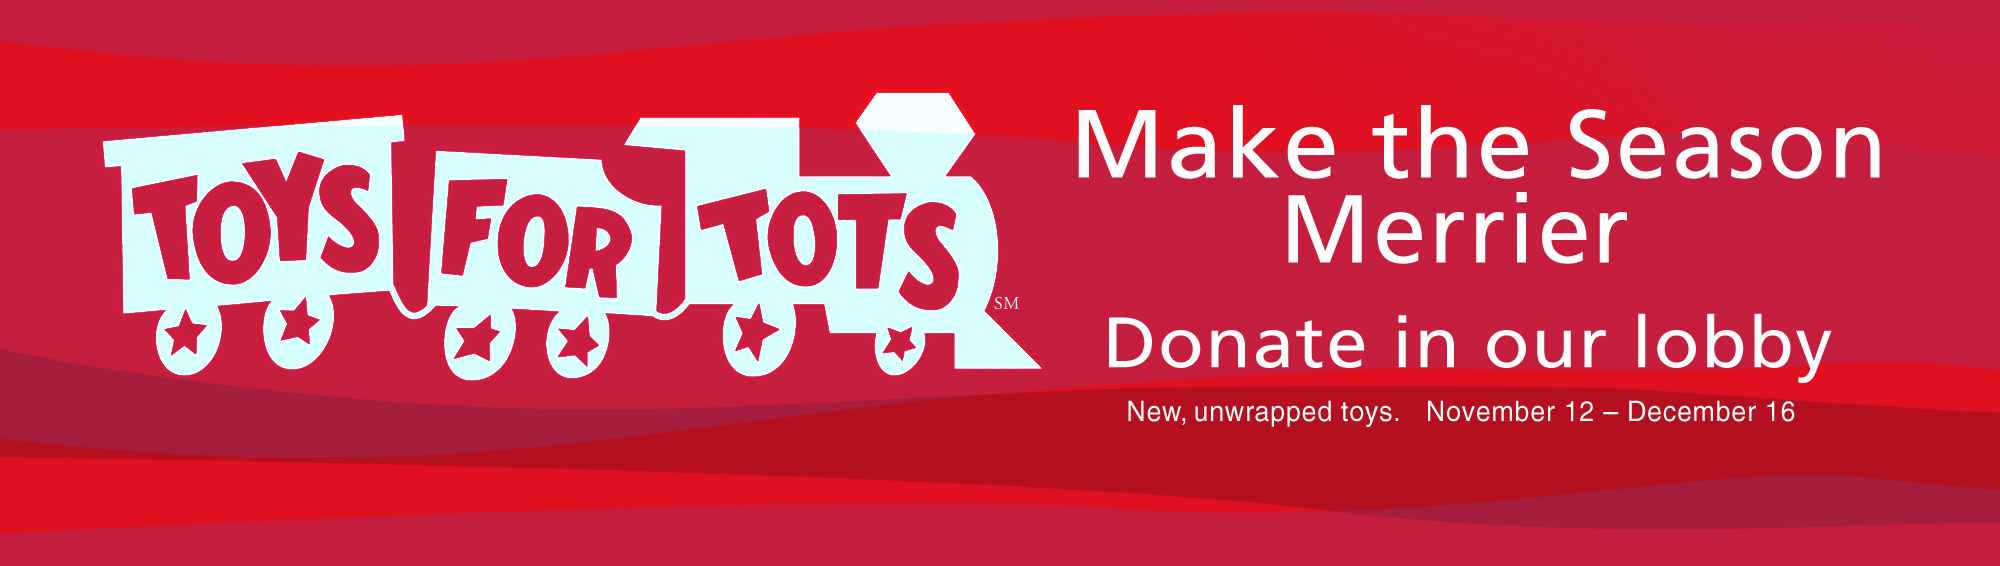 Make the Season Merrier. Toys for Tots. Donate in our lobby. November 12-December16